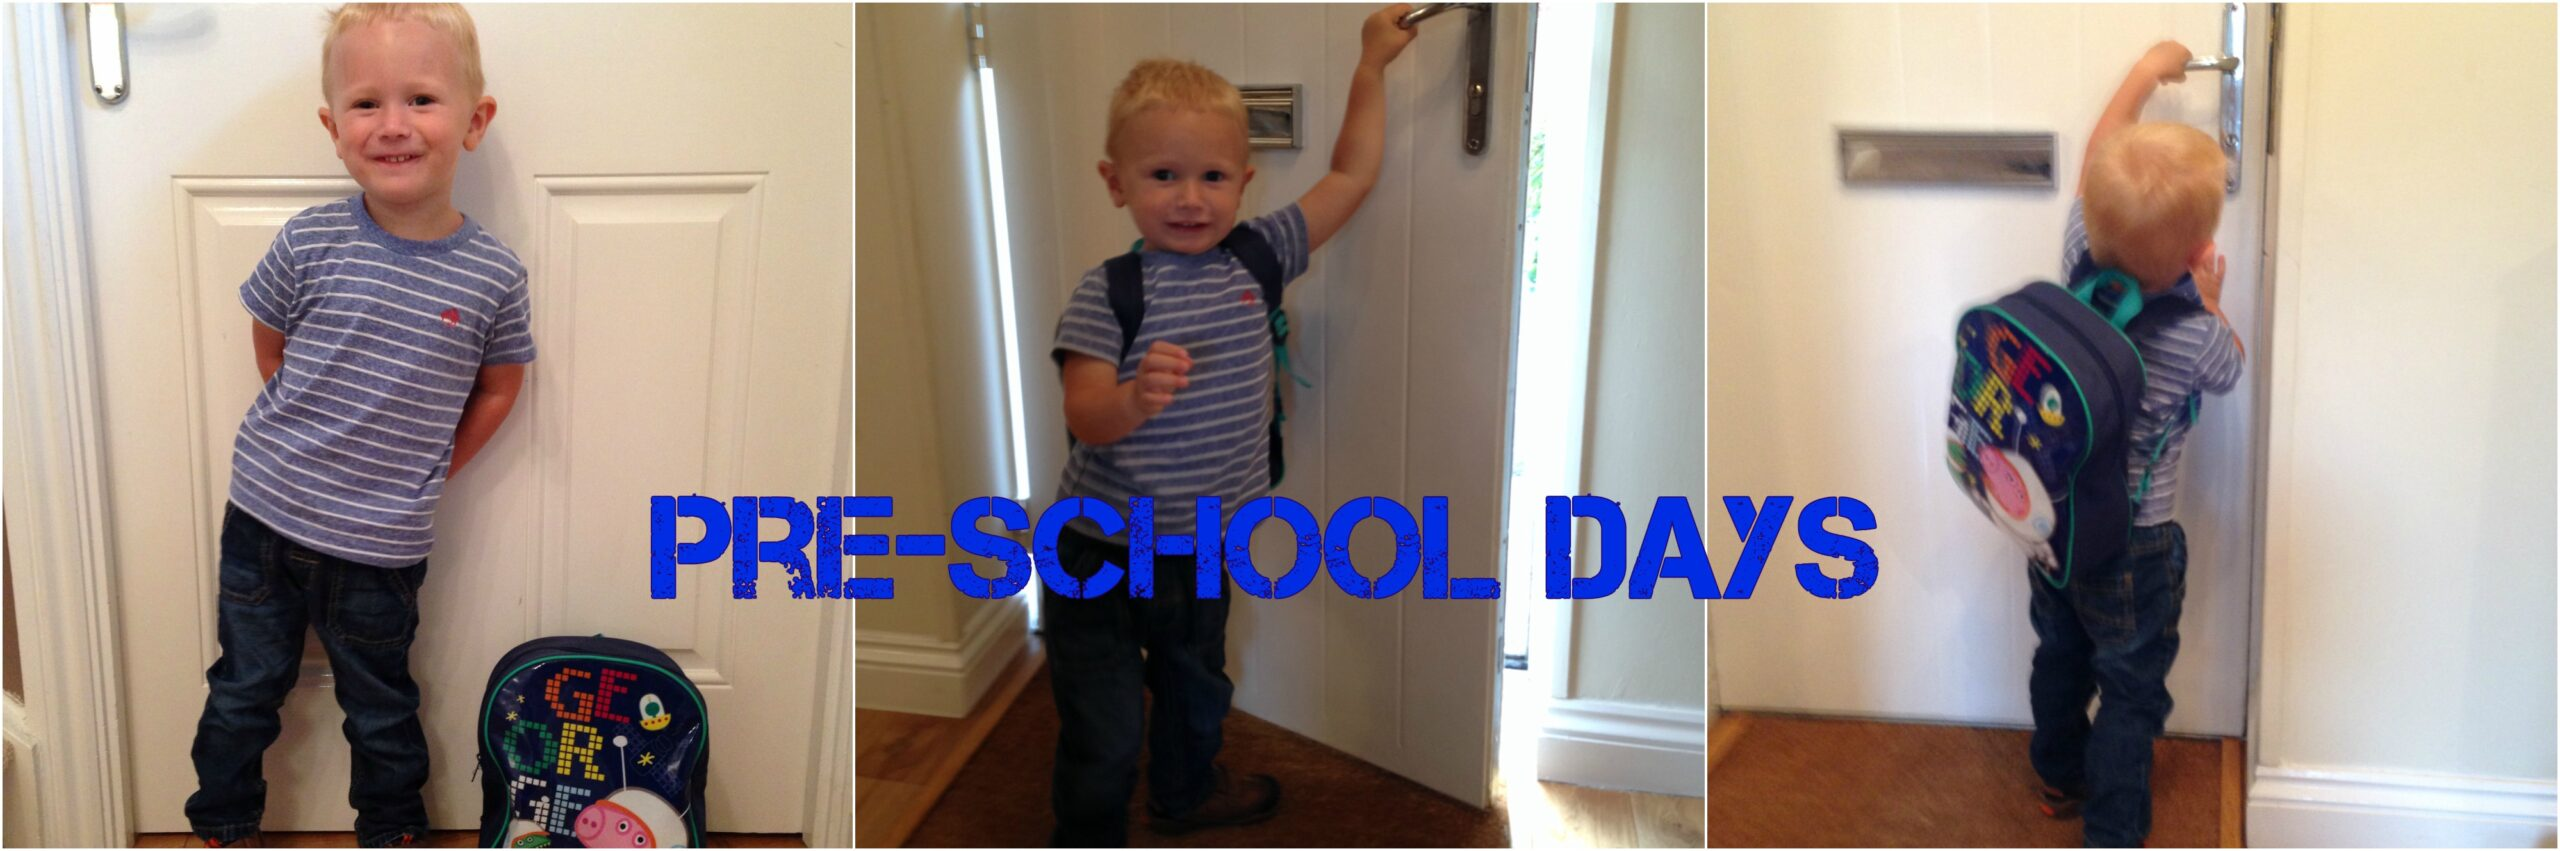 pre school days across 3 pictures of boy by door